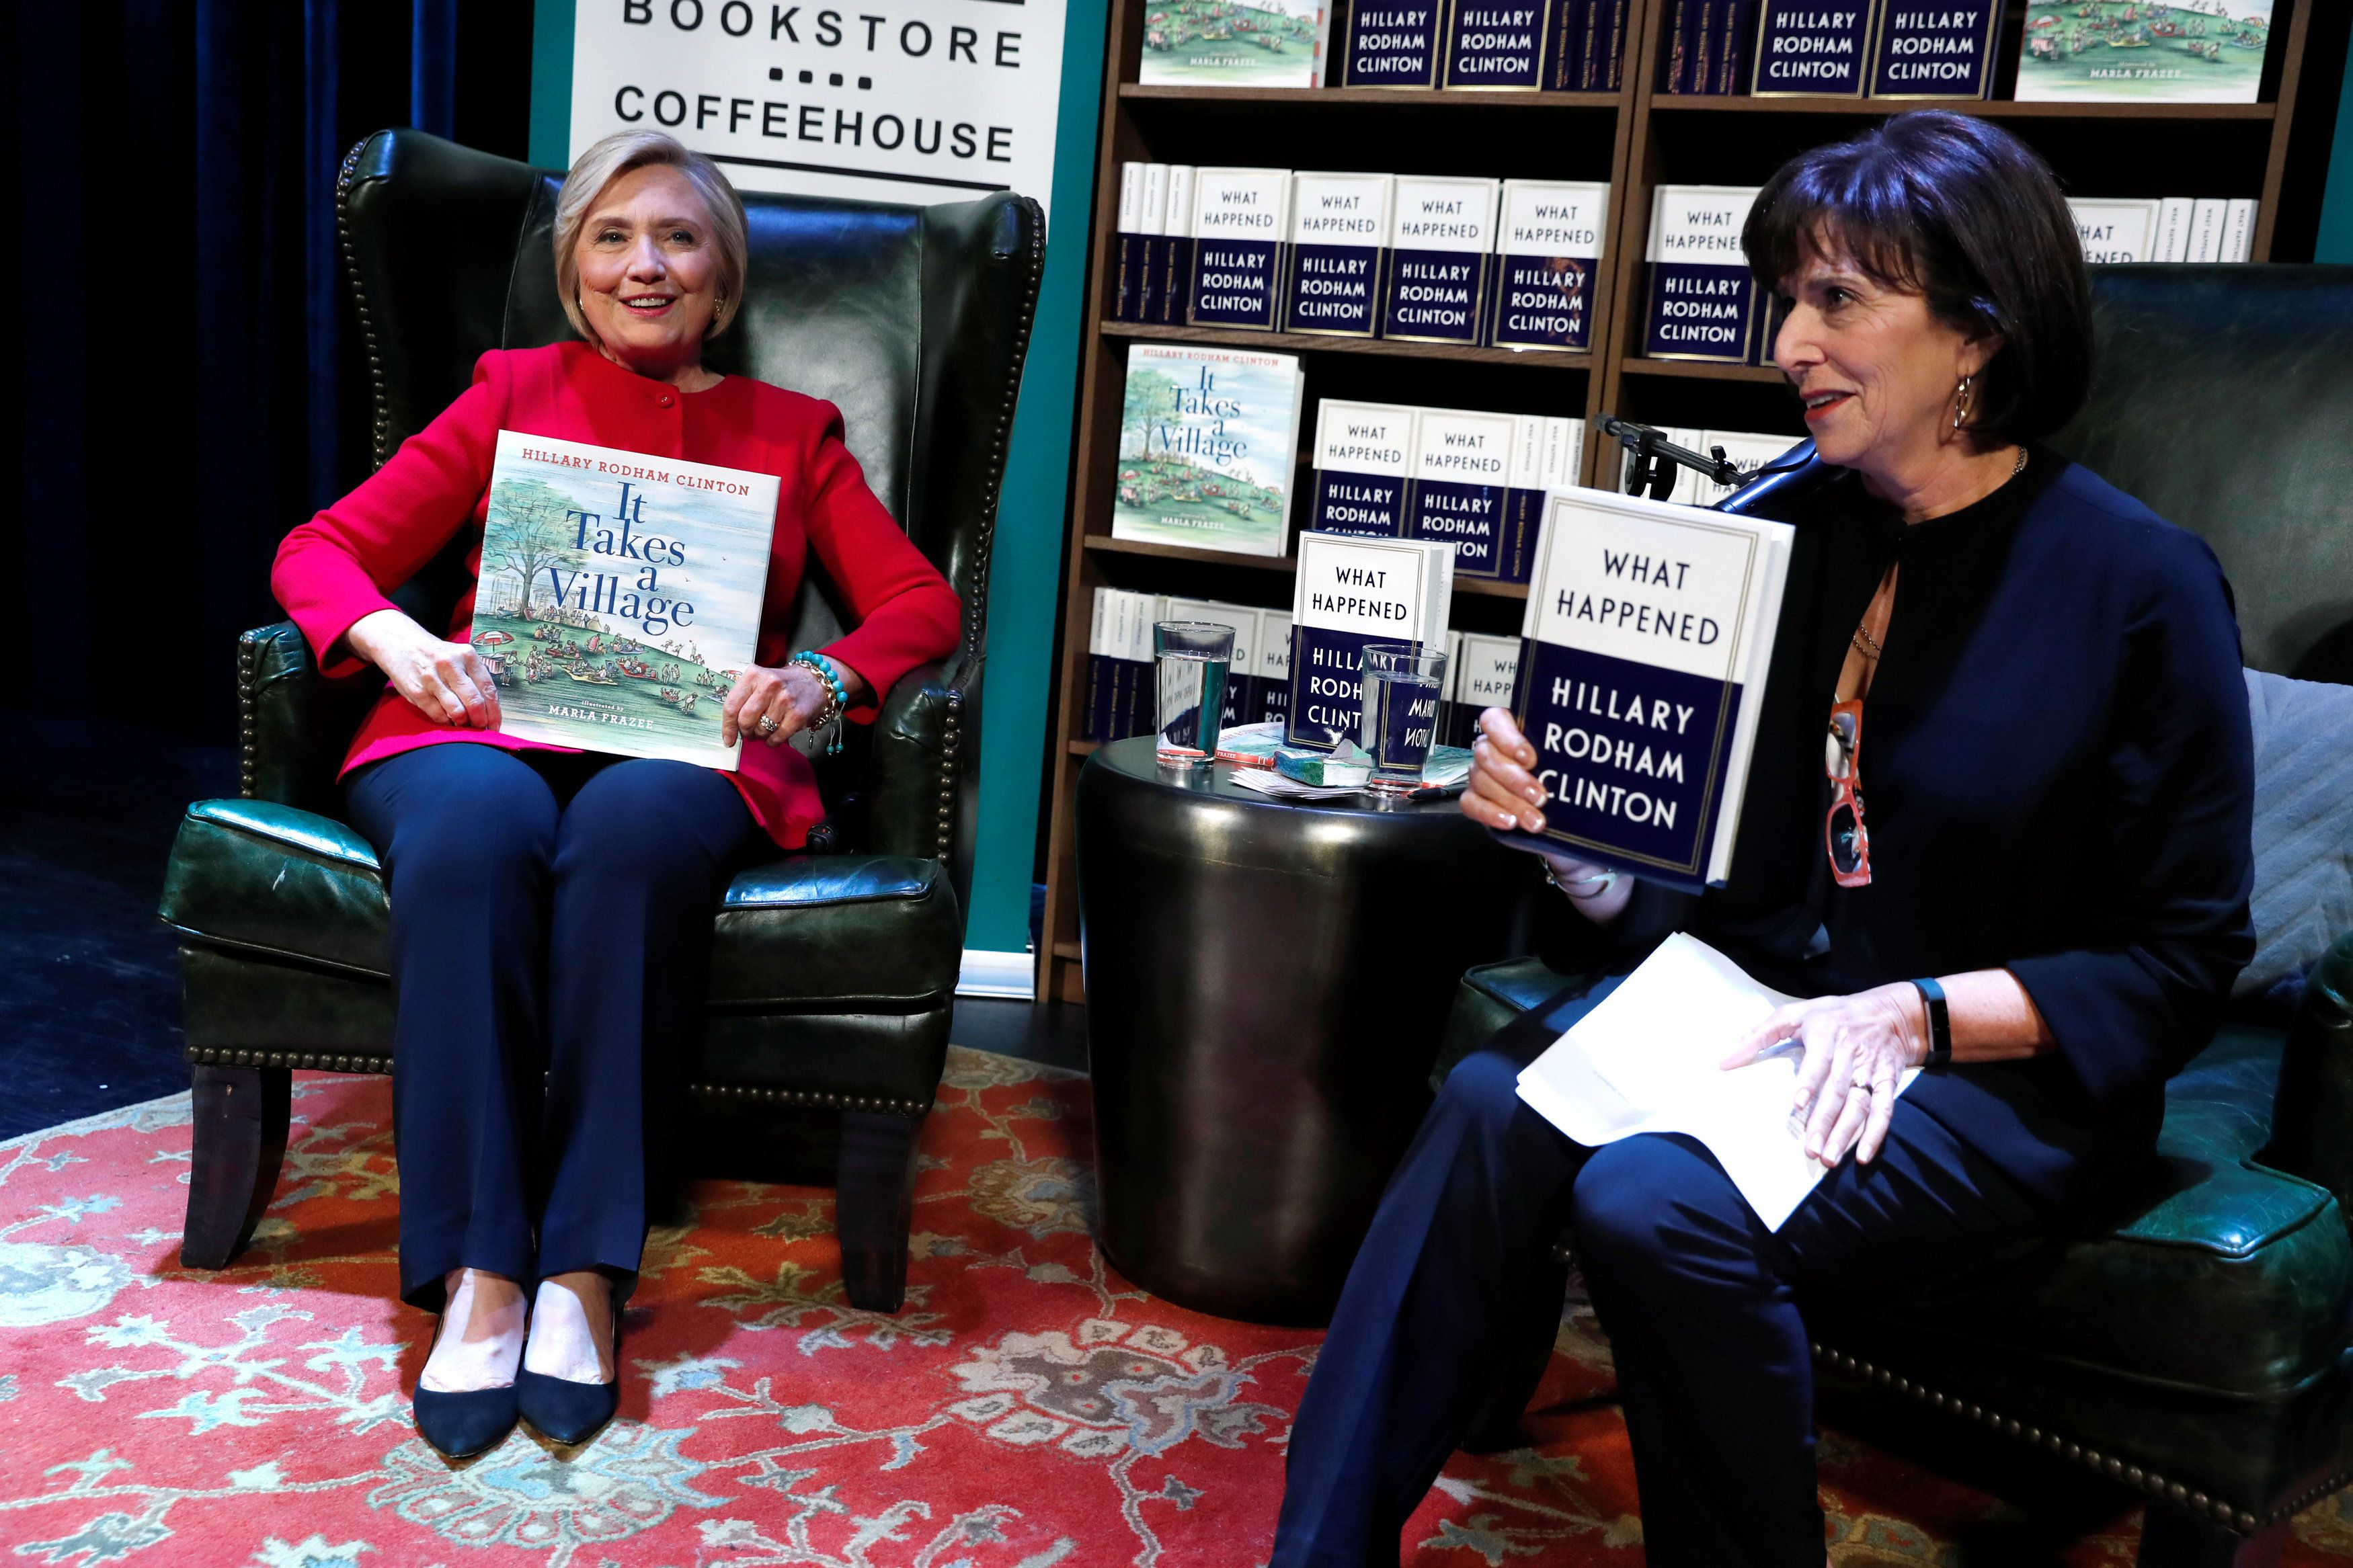 """Former U.S. Secretary of State Hillary Clinton (L), with bookstore owner Lissa Muscatine (R), takes the stage to discuss her new book """"What Happened"""" as she launches a 15-city book tour at the Warner Theatre in Washington, U.S. September 18, 2017. REUTERS/Jonathan Ernst"""